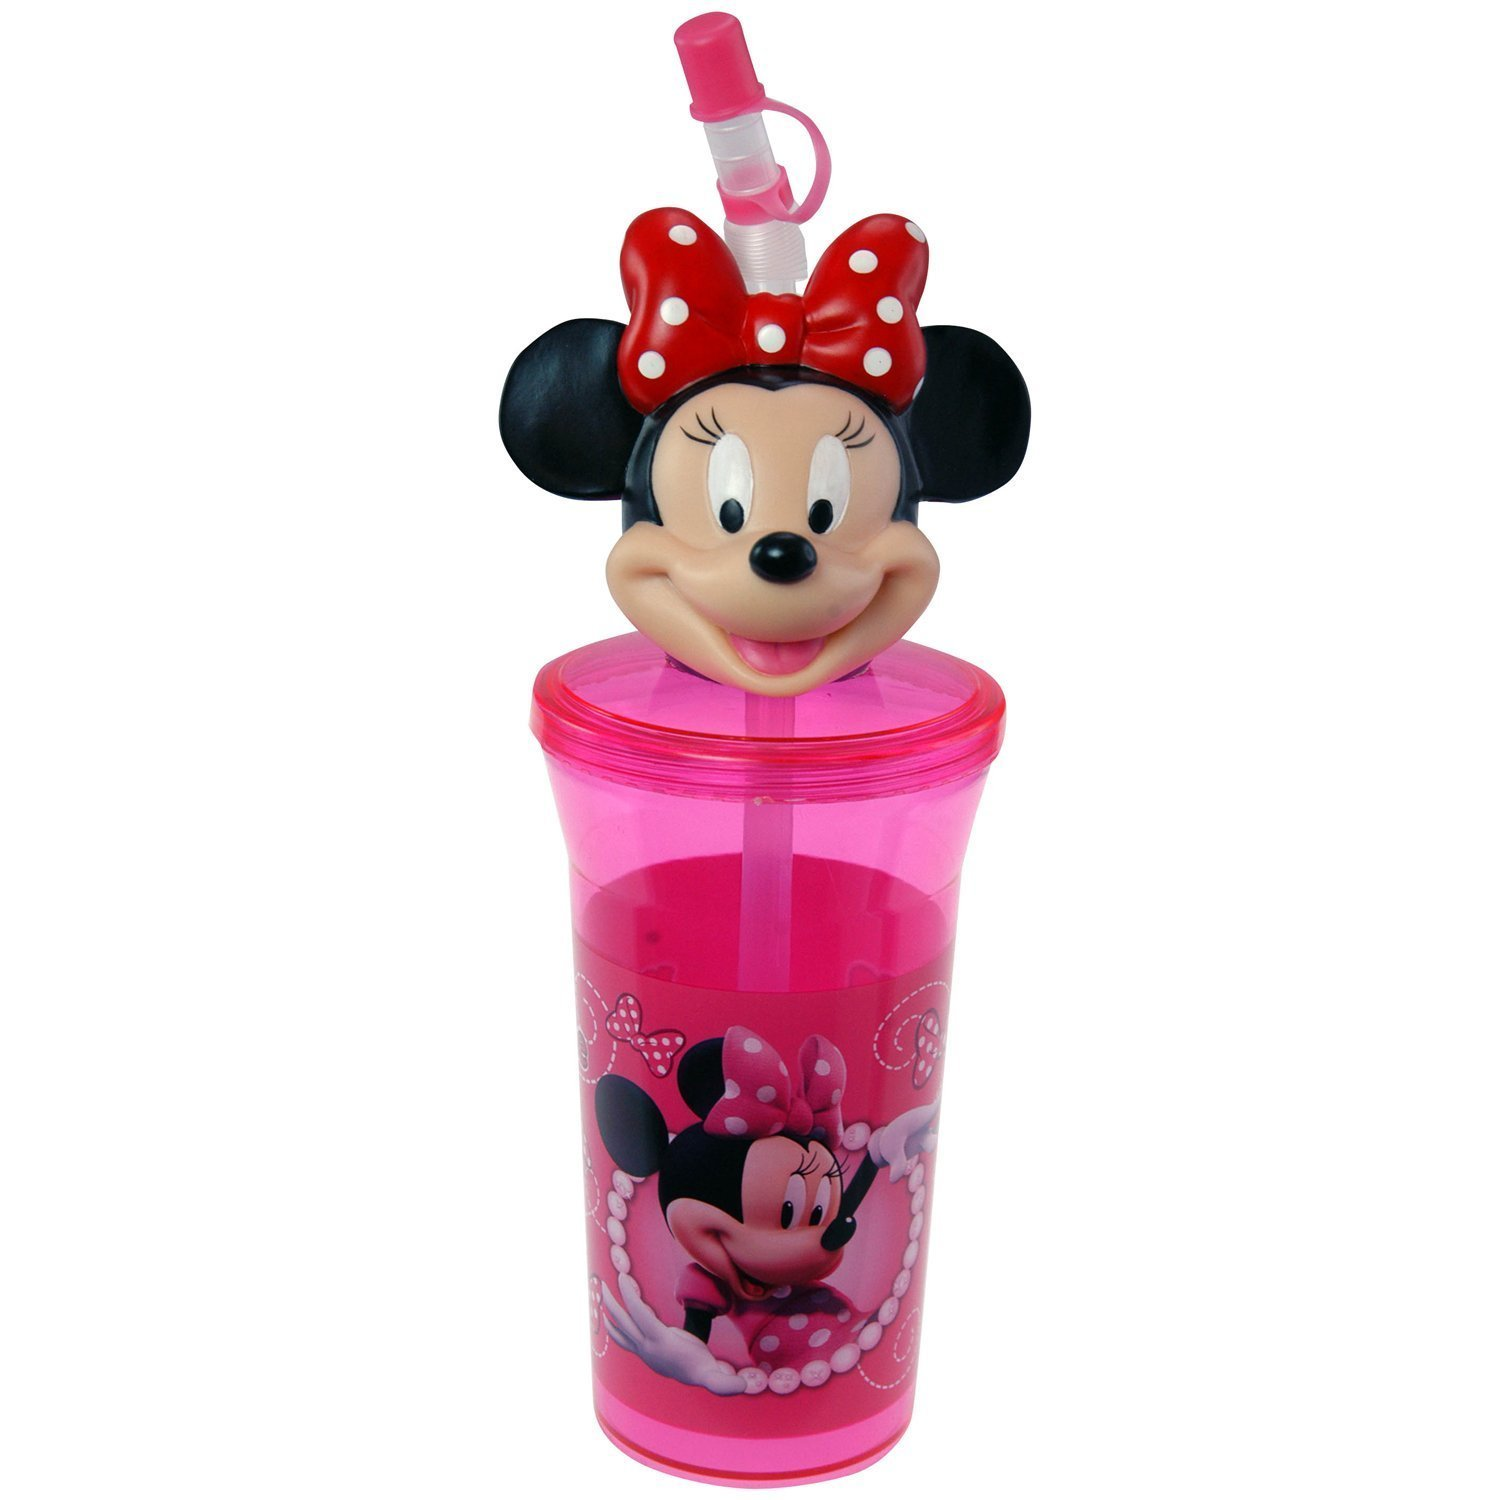 Bottle Tumbler Toys Perfect for Birthday Party Favor Goodie bags - Minnie Mouse by Disney